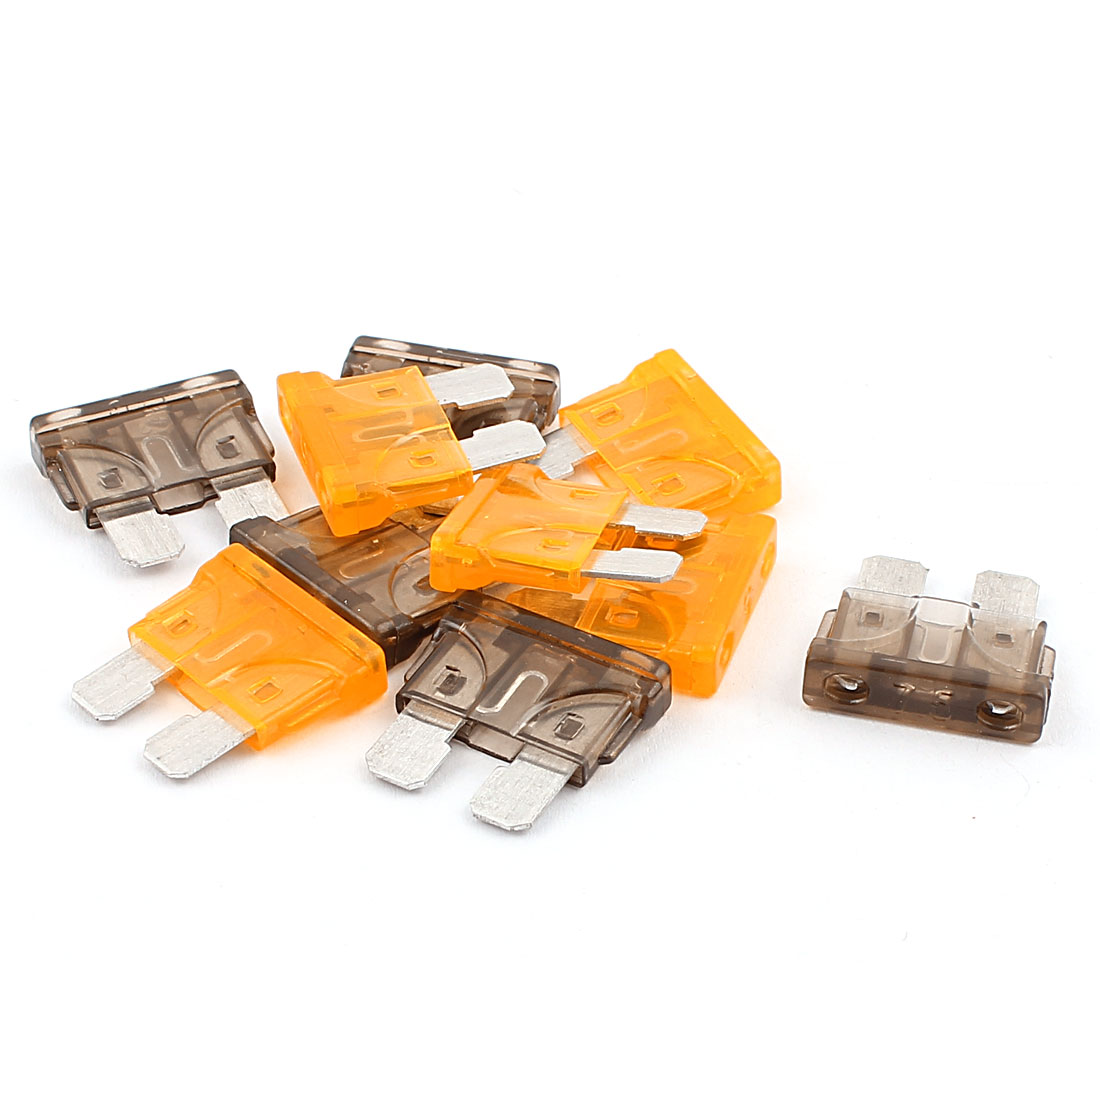 10pcs Orange Gray 7.5A 5A Plastic Shell Mini Blade Fuse for Car Truck Caravan Motorcycle SUV